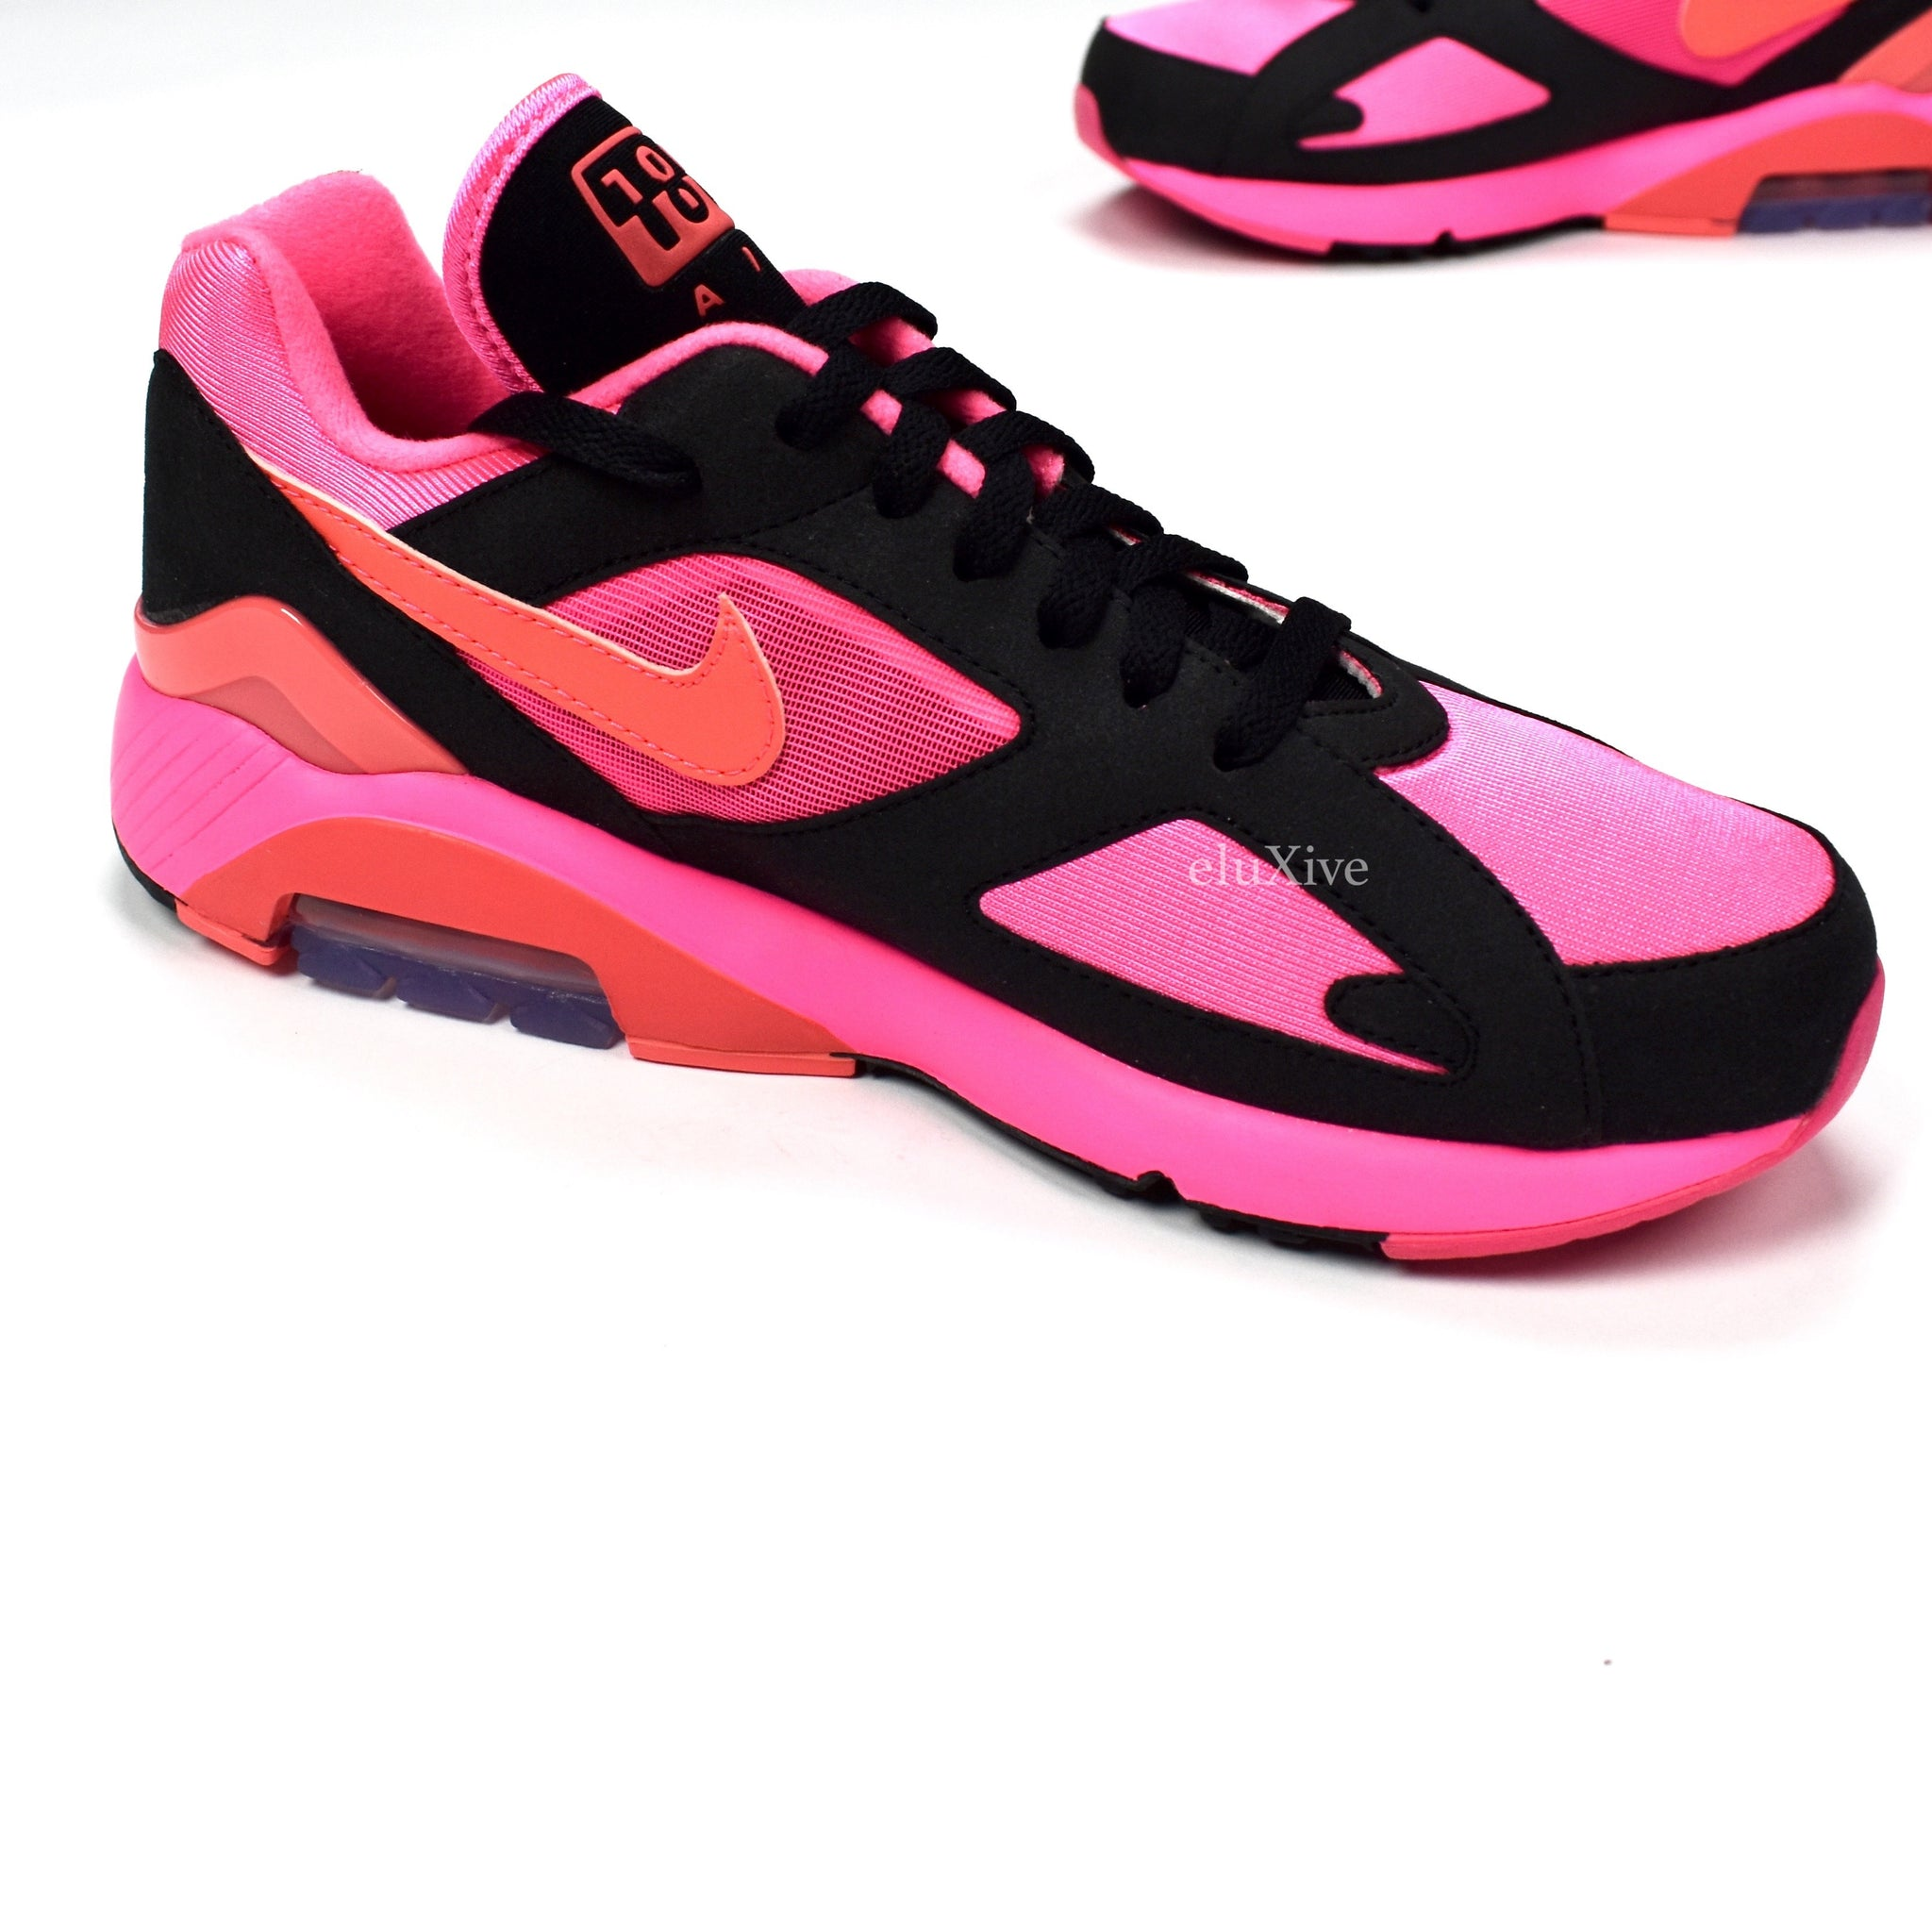 807cdc021464 Comme des Garcons x Nike - Men s Air Max 180 CDG (Black   Pink ...